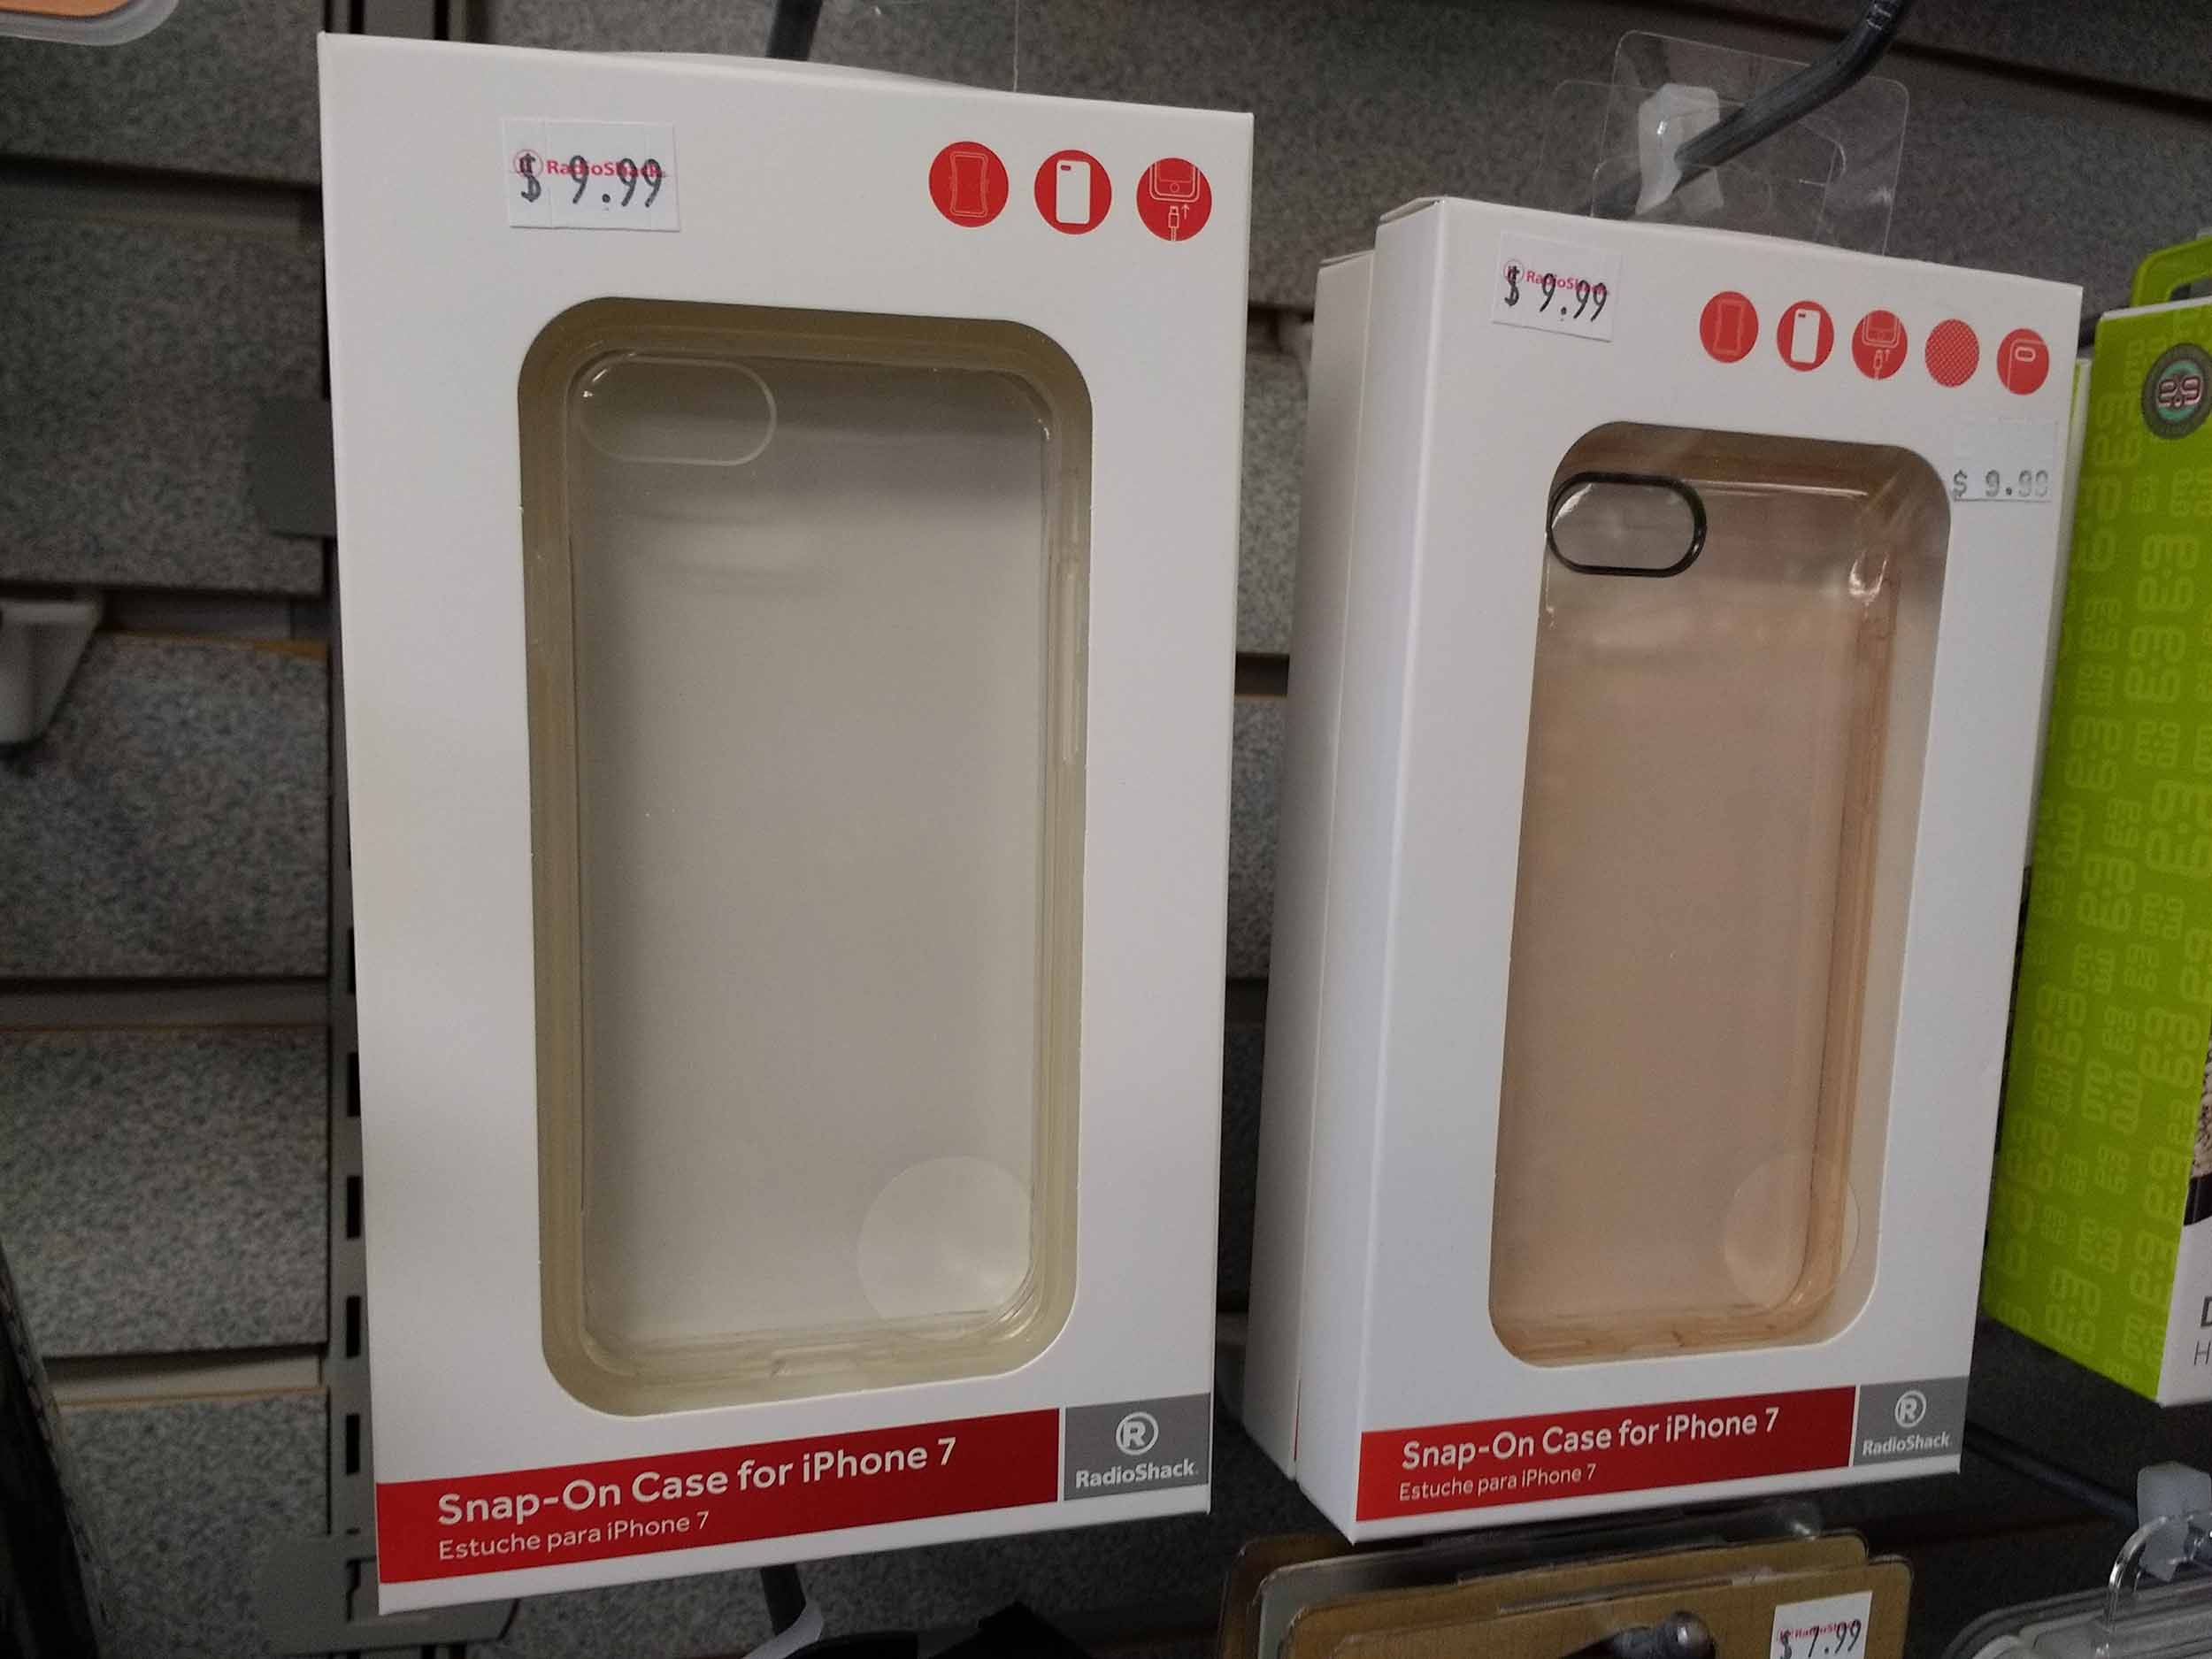 Smartphone accessories include clear snap-on cases.